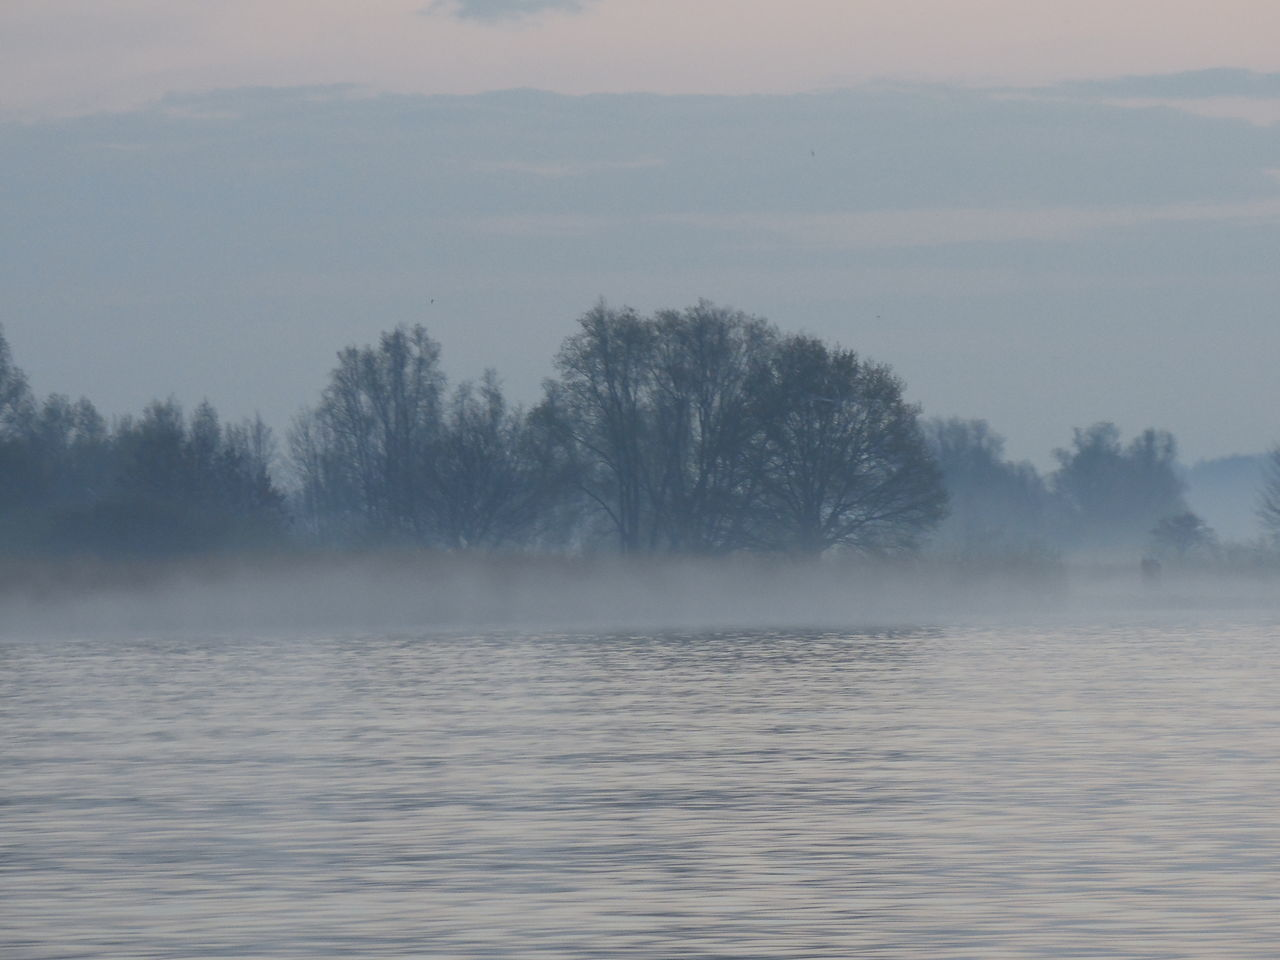 Foggy Morning Riverside Photography River View Riverside Riverbank River Collection Eyem Vision Water Reflections Dutch Countyside Nature_collection Natural Beauty Dutch Landscape River Eyem Best Shots Eyemphotography The Great Outdoors With Adobe Eyem Best Shots Nature_collection Stunning_shots Best Photos Bestoftheday Best Photos For Sale Eyemmarket The Netherlands I See It. Stunning Scenery